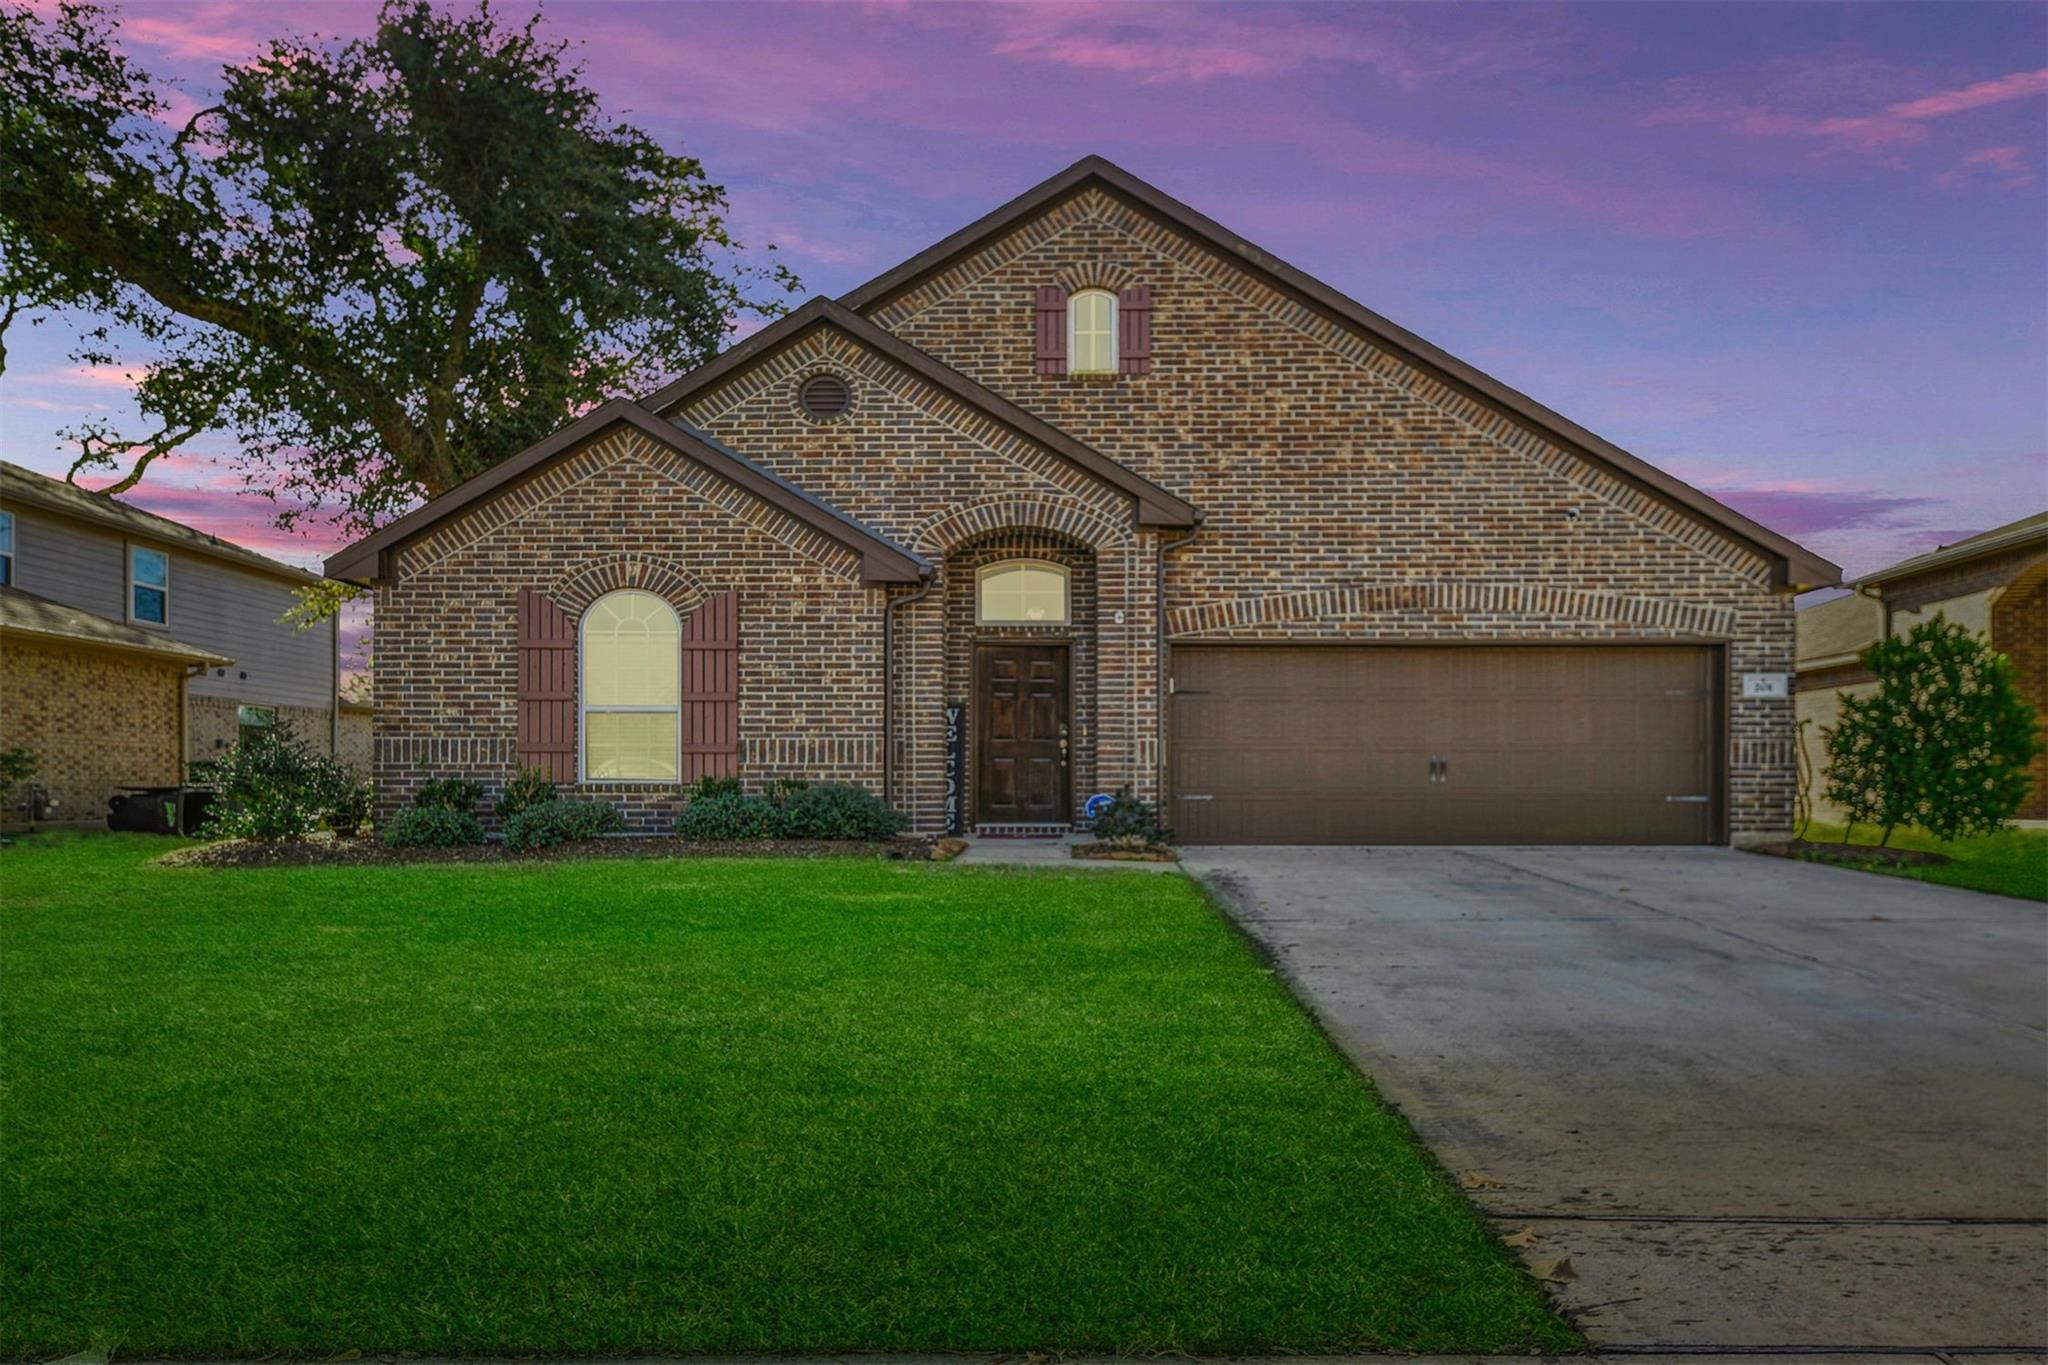 201 Meadow Ridge Way Property Photo - Clute, TX real estate listing